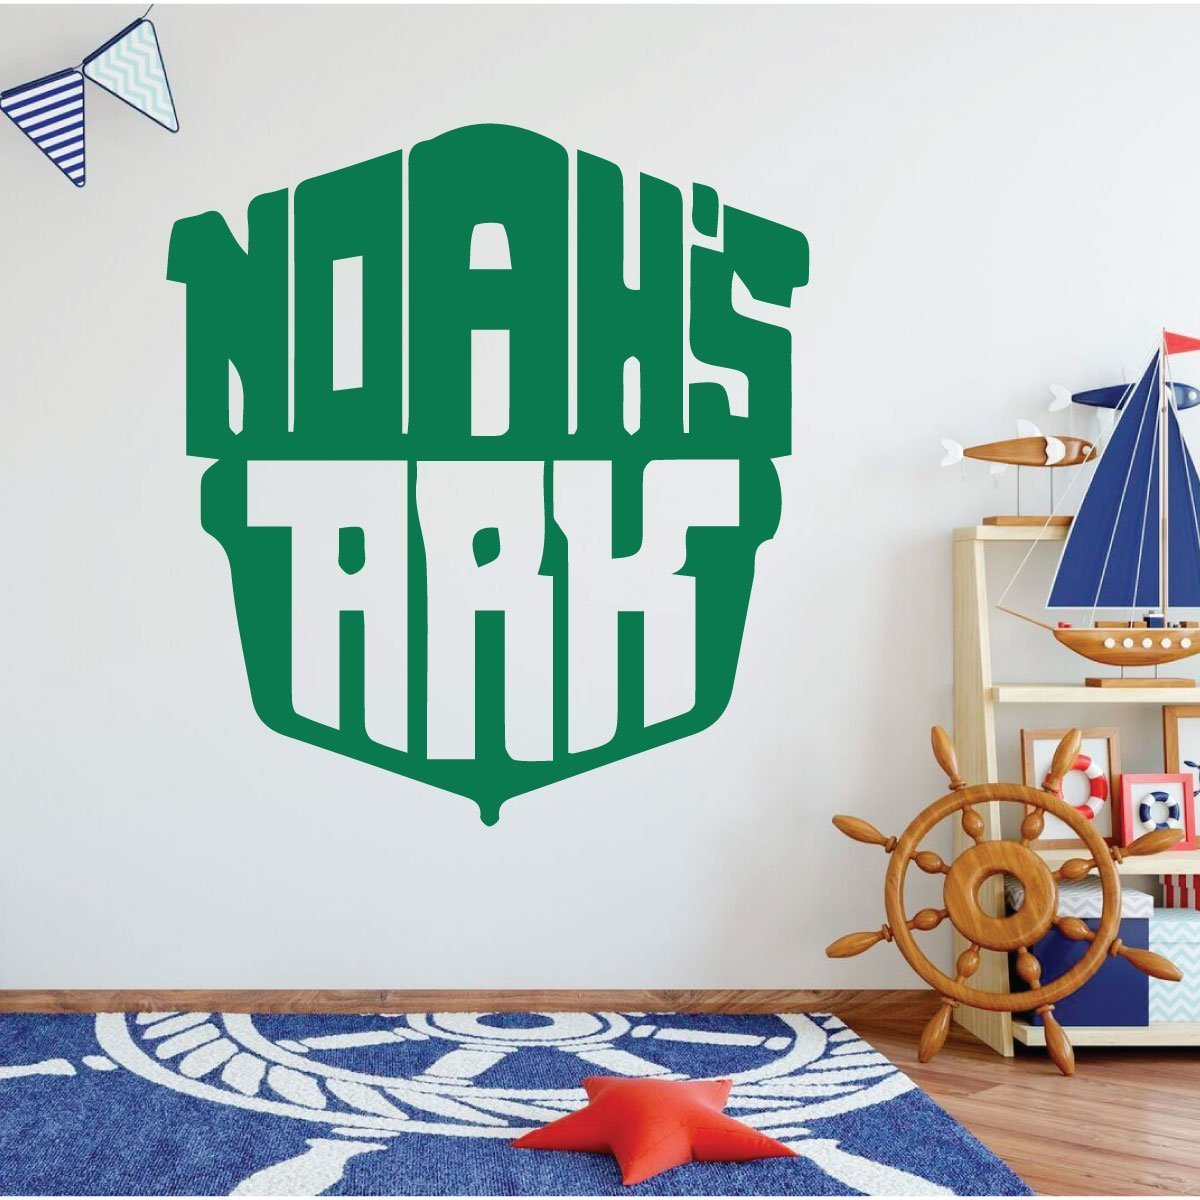 Noah's Ark - Christian Wall Art - Nautical Wall Decor